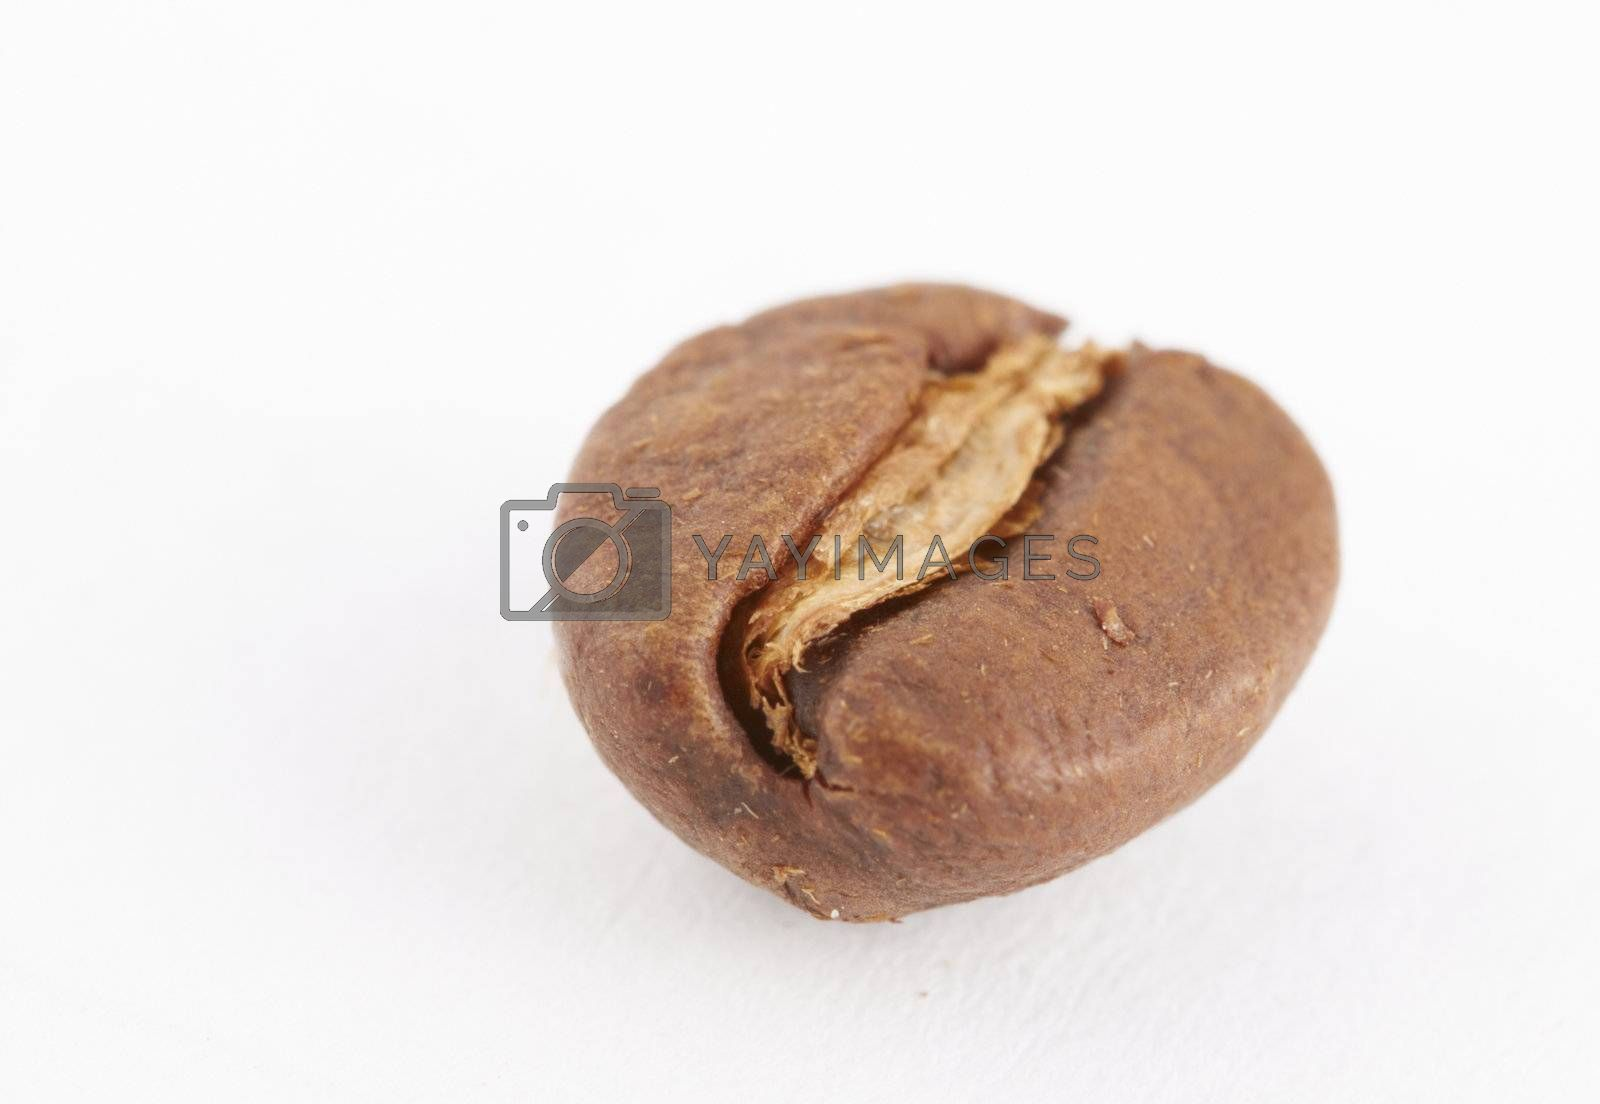 Macro shot of coffe bean on white with copy space